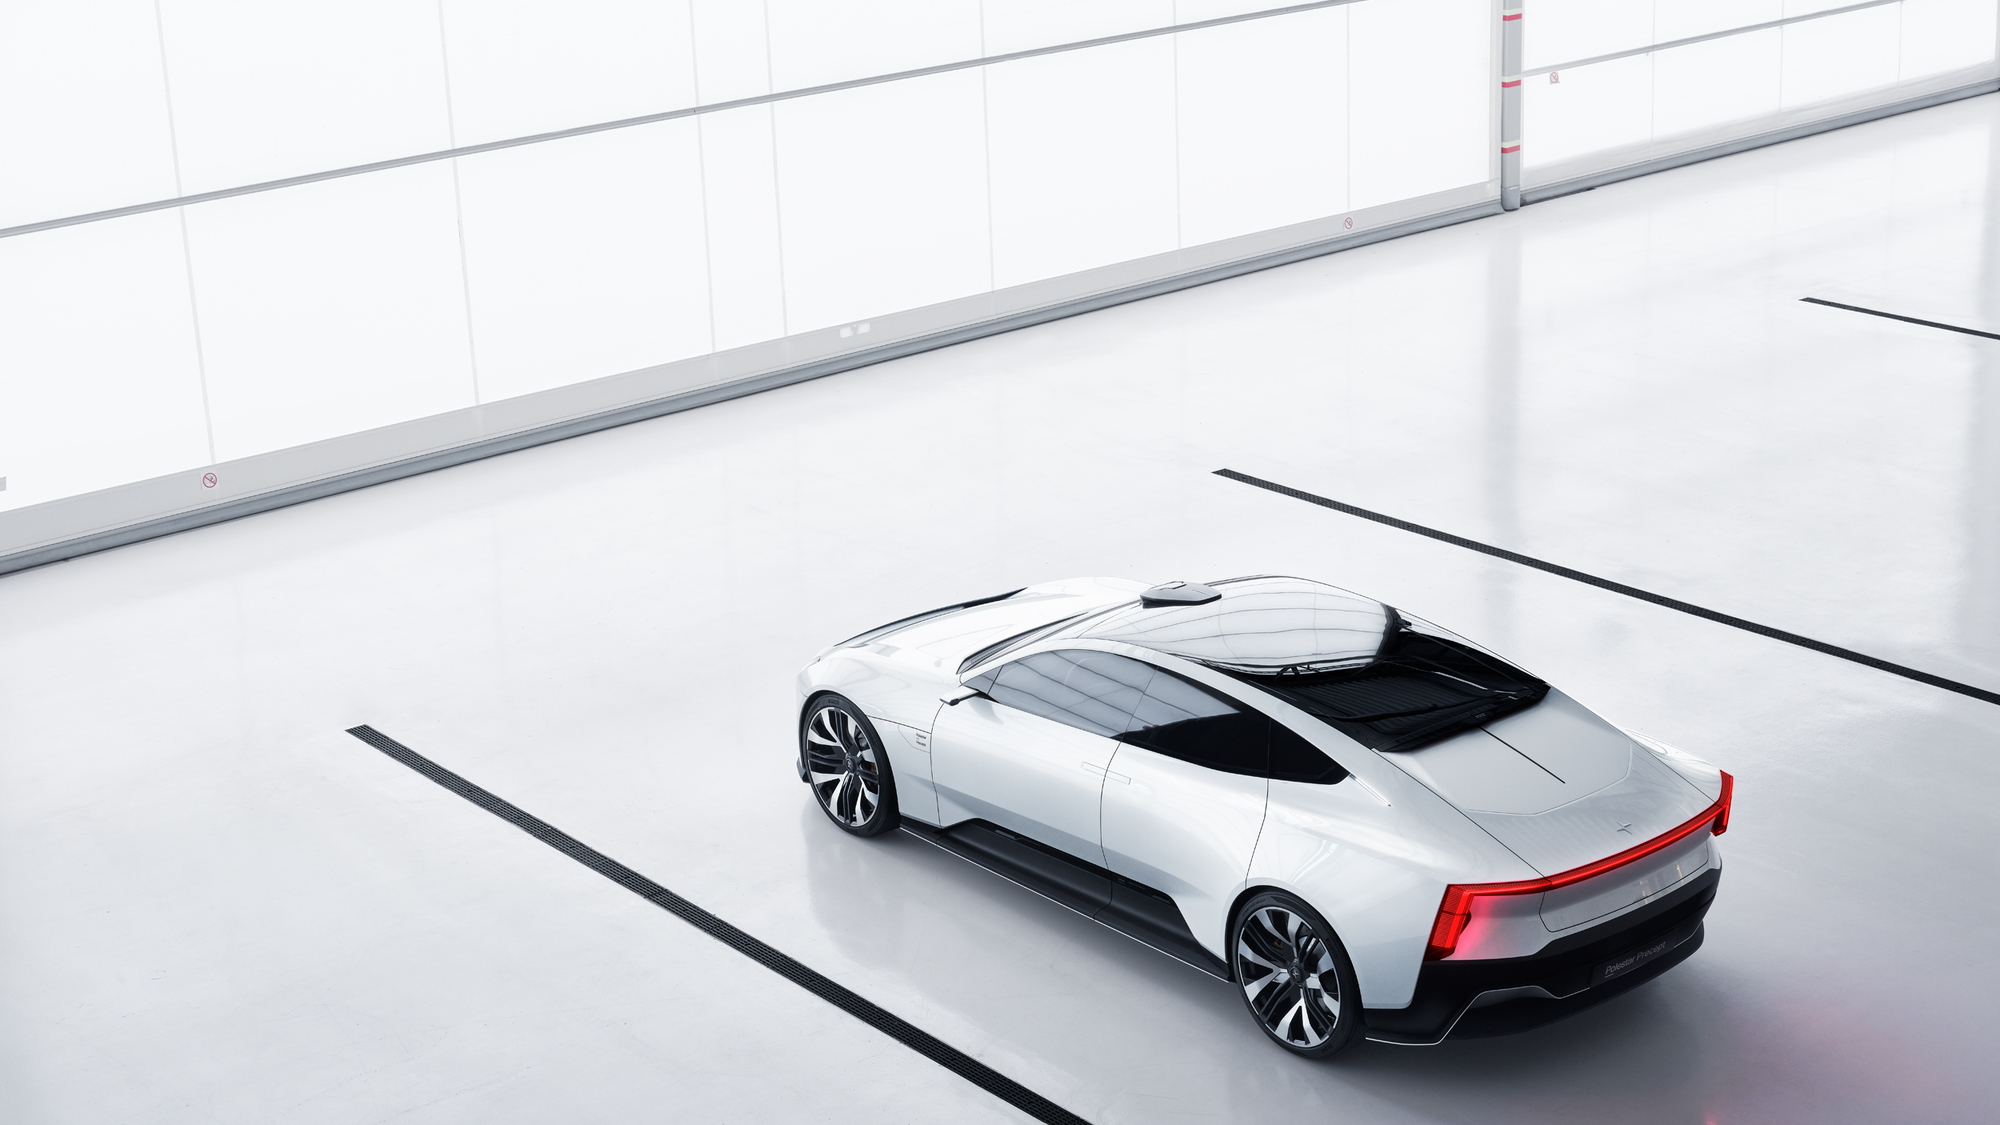 Polestar Precept to enter production